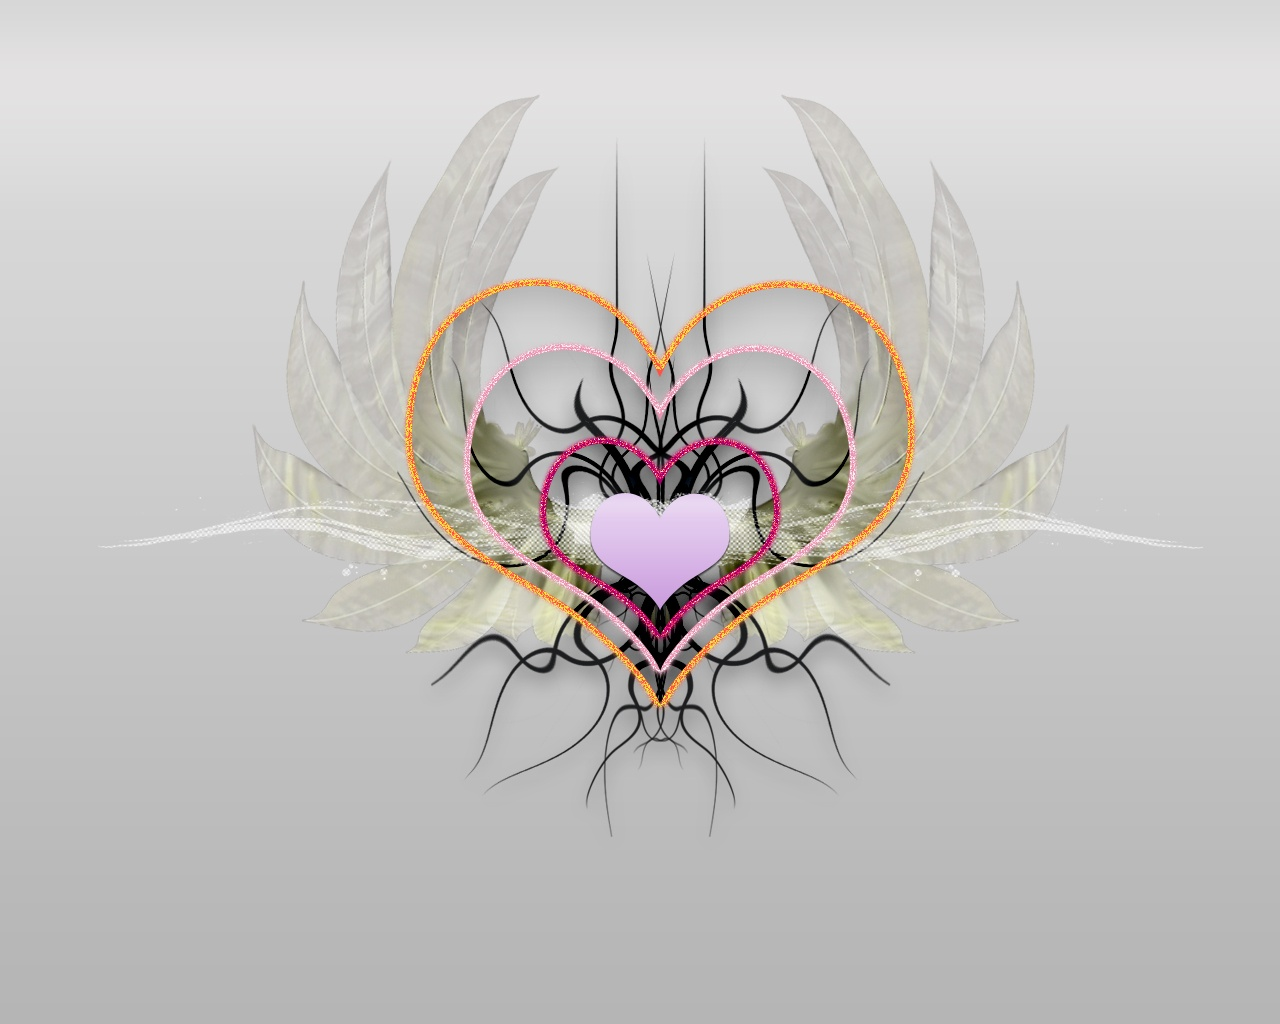 Free Cute Items Post, a Pile of Angel's Heart, Held Up by Lotus, Gray Background 1280X1024 free wallpaper download